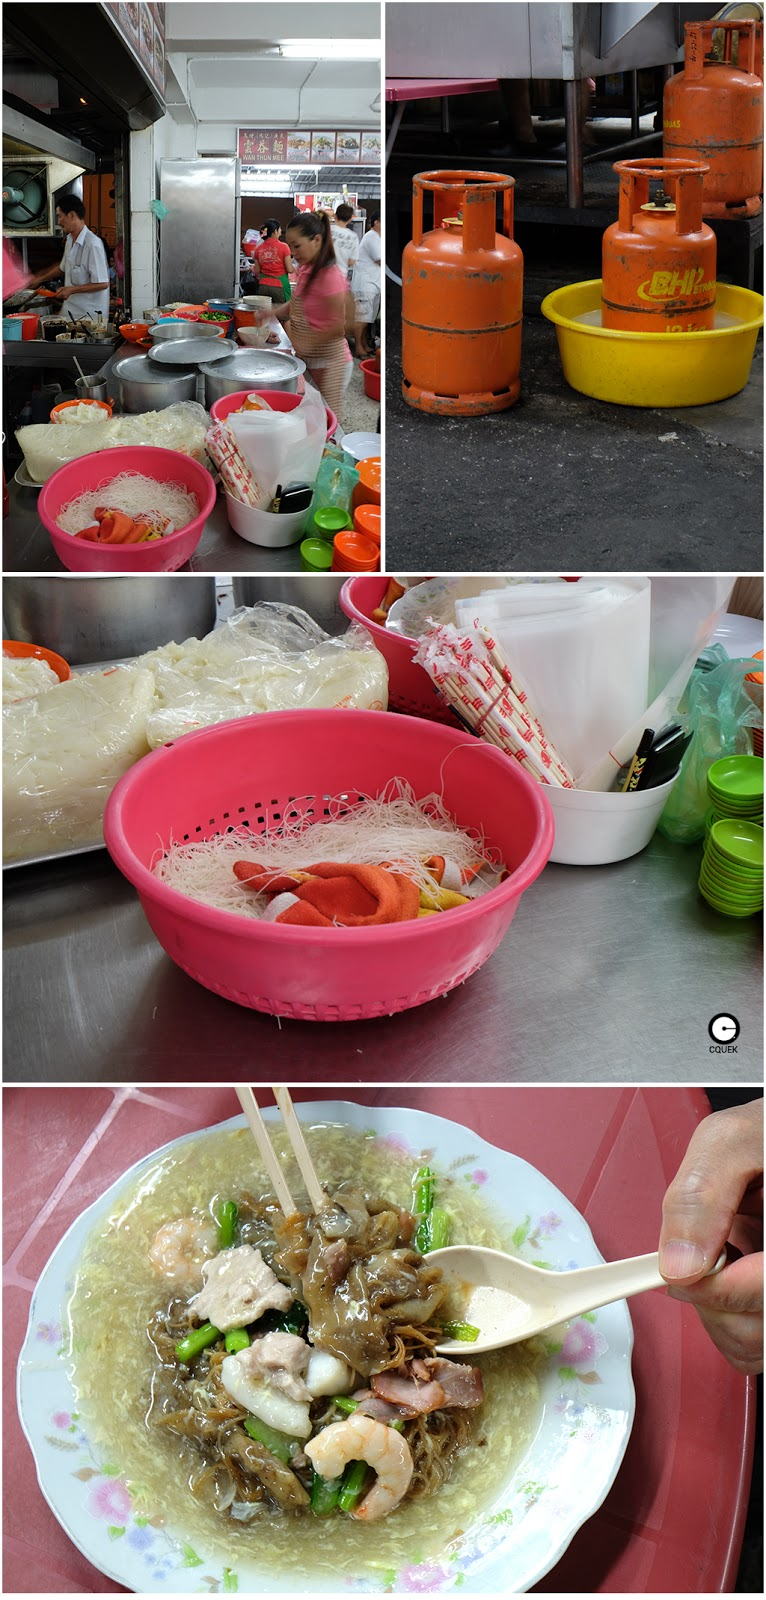 hor fun penang style char hor fun always has meat pork liver seafood ...